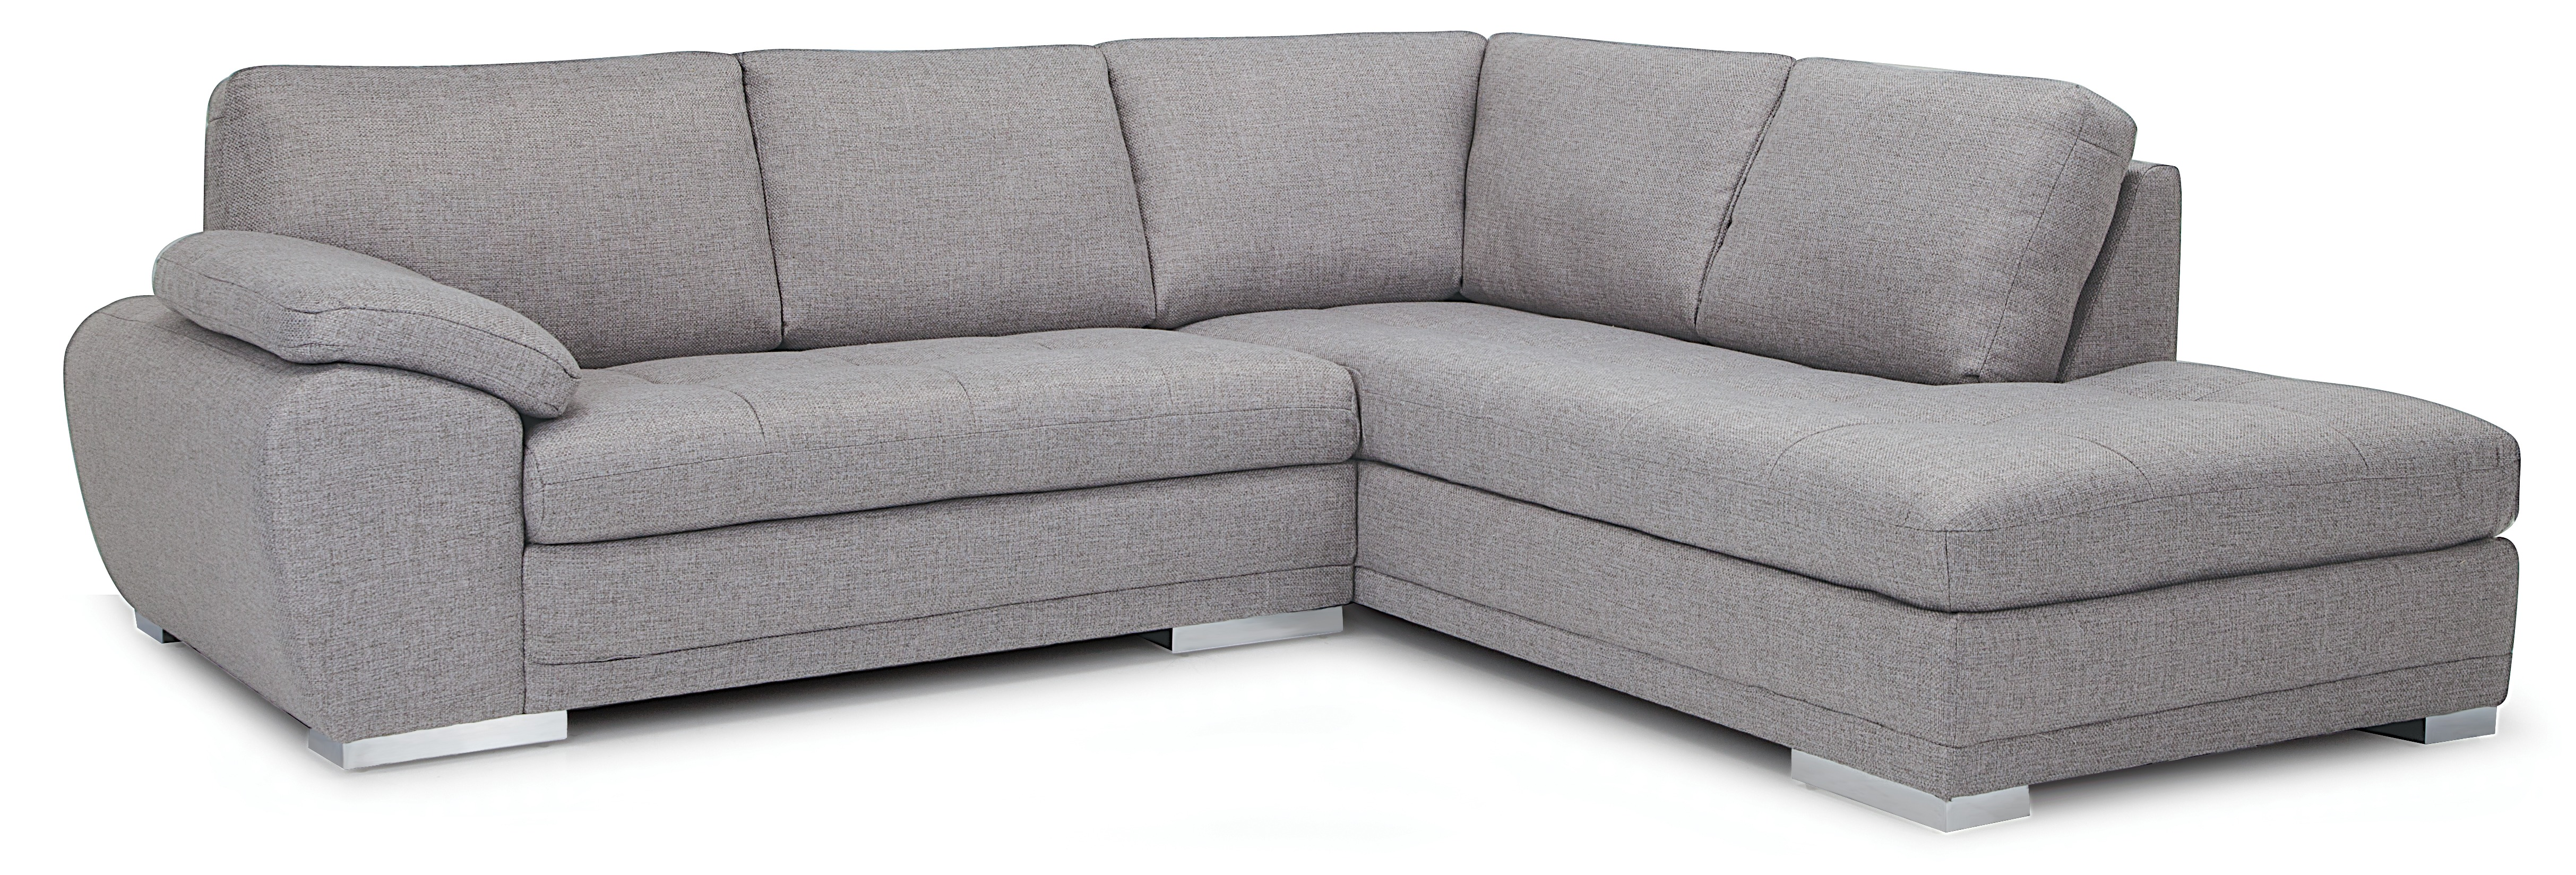 Miami 77319 - 70319 Sectional - 350 Fabrics and | Sofas and ...